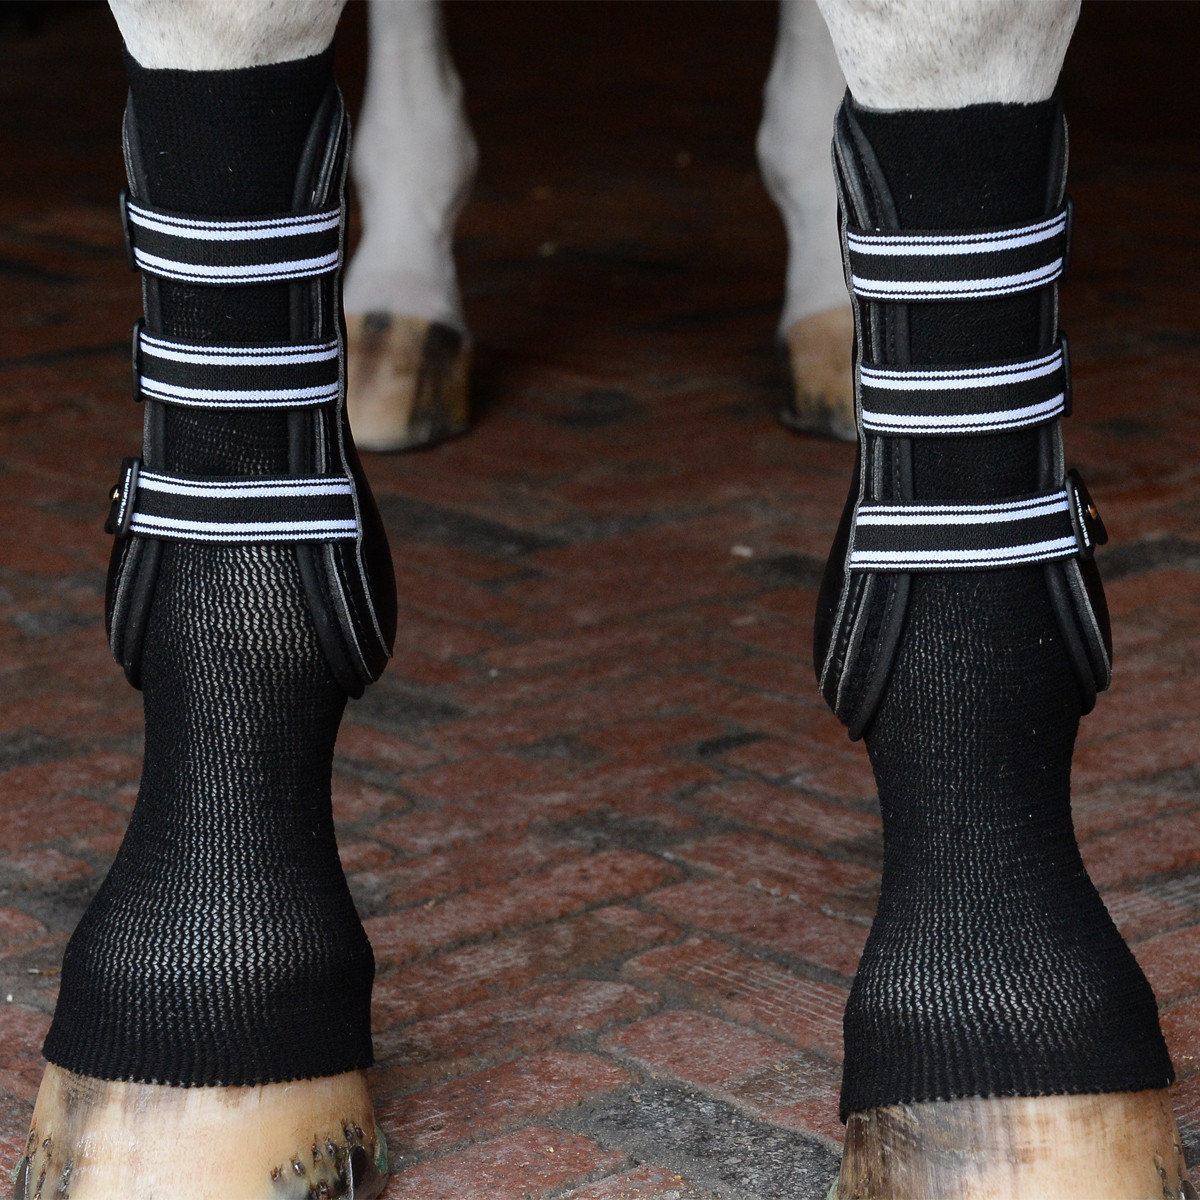 EquiFit® GelSox™ for Horses